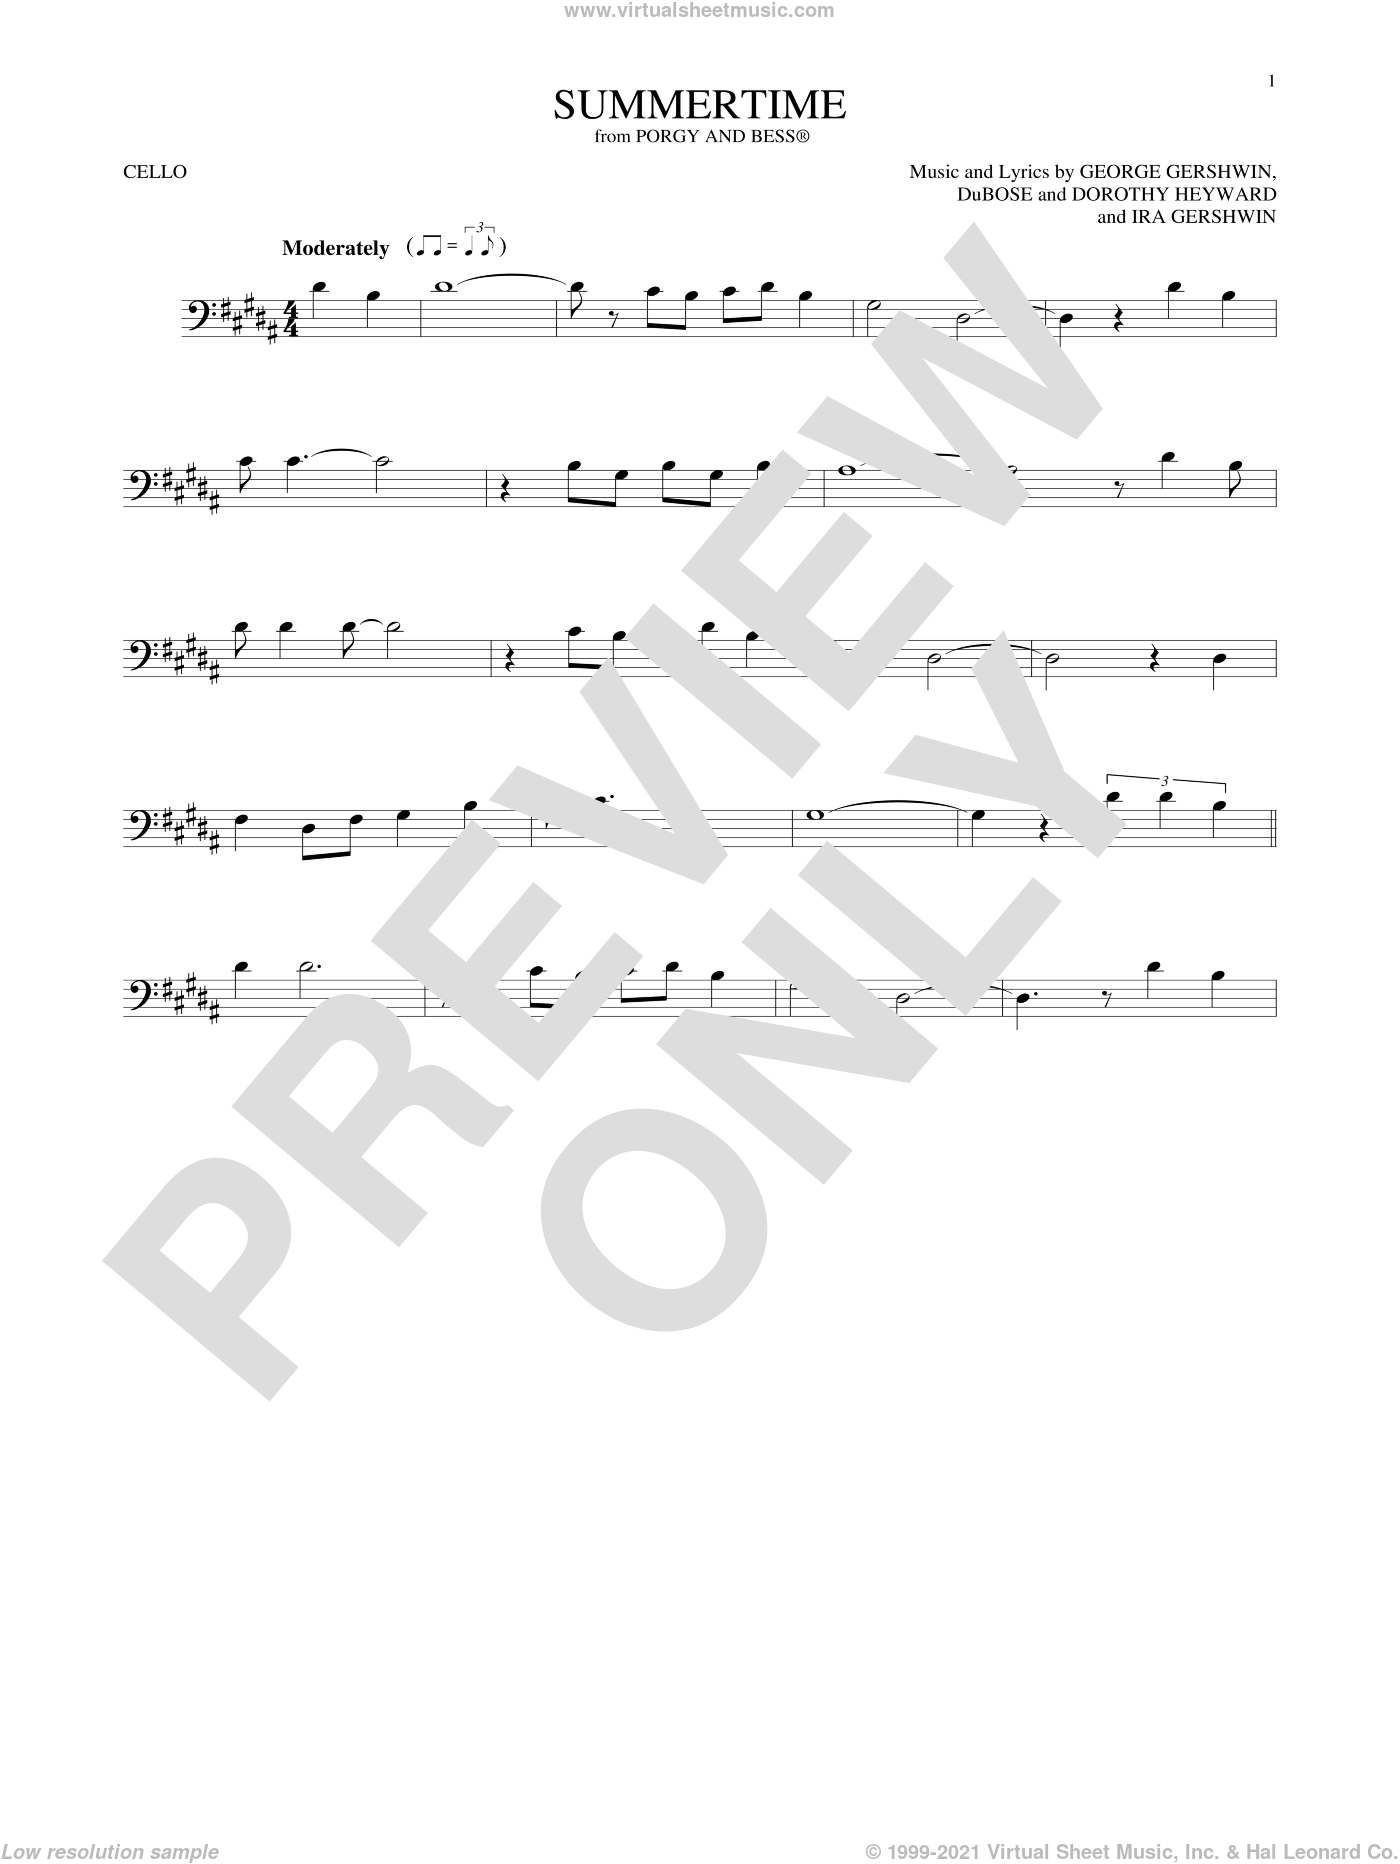 Summertime sheet music for cello solo by George Gershwin, Dorothy Heyward, DuBose Heyward and Ira Gershwin, intermediate